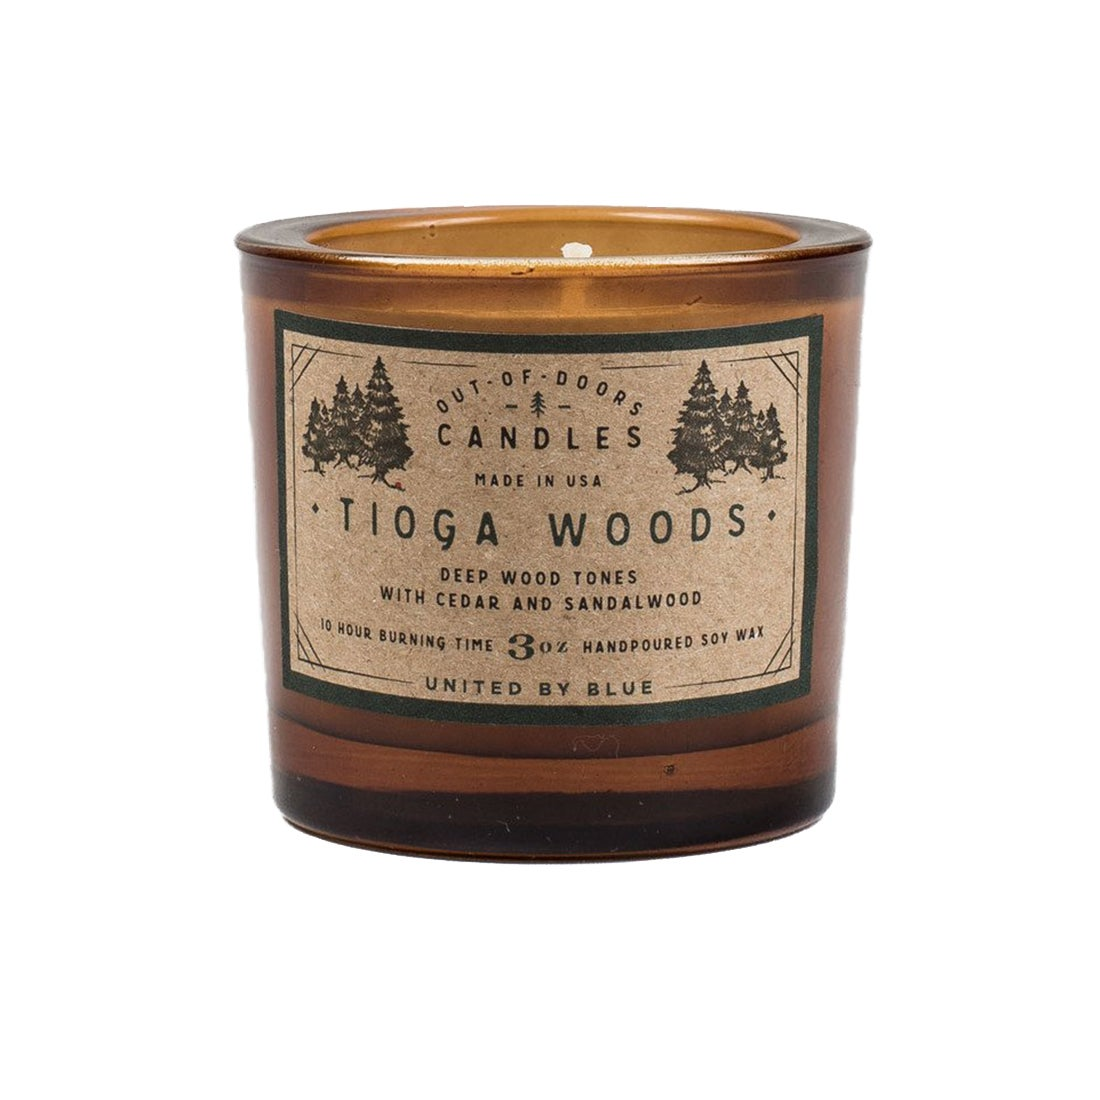 United by Blue Out Of Doors Tioga Woods Candle